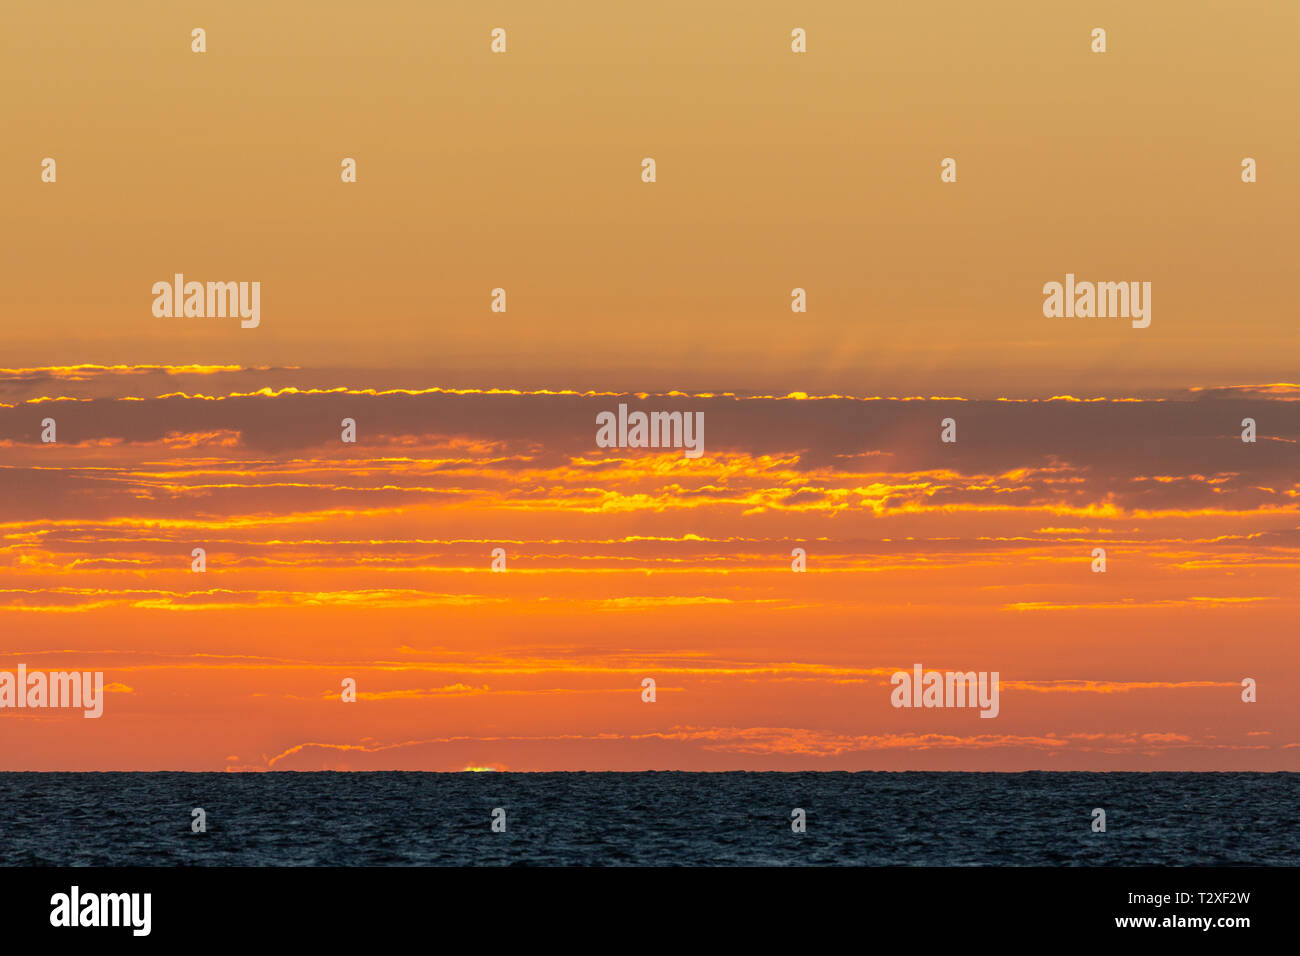 The famous Green Flash as the sun sets over the ocean as seen from the Silver Bank. - Stock Image